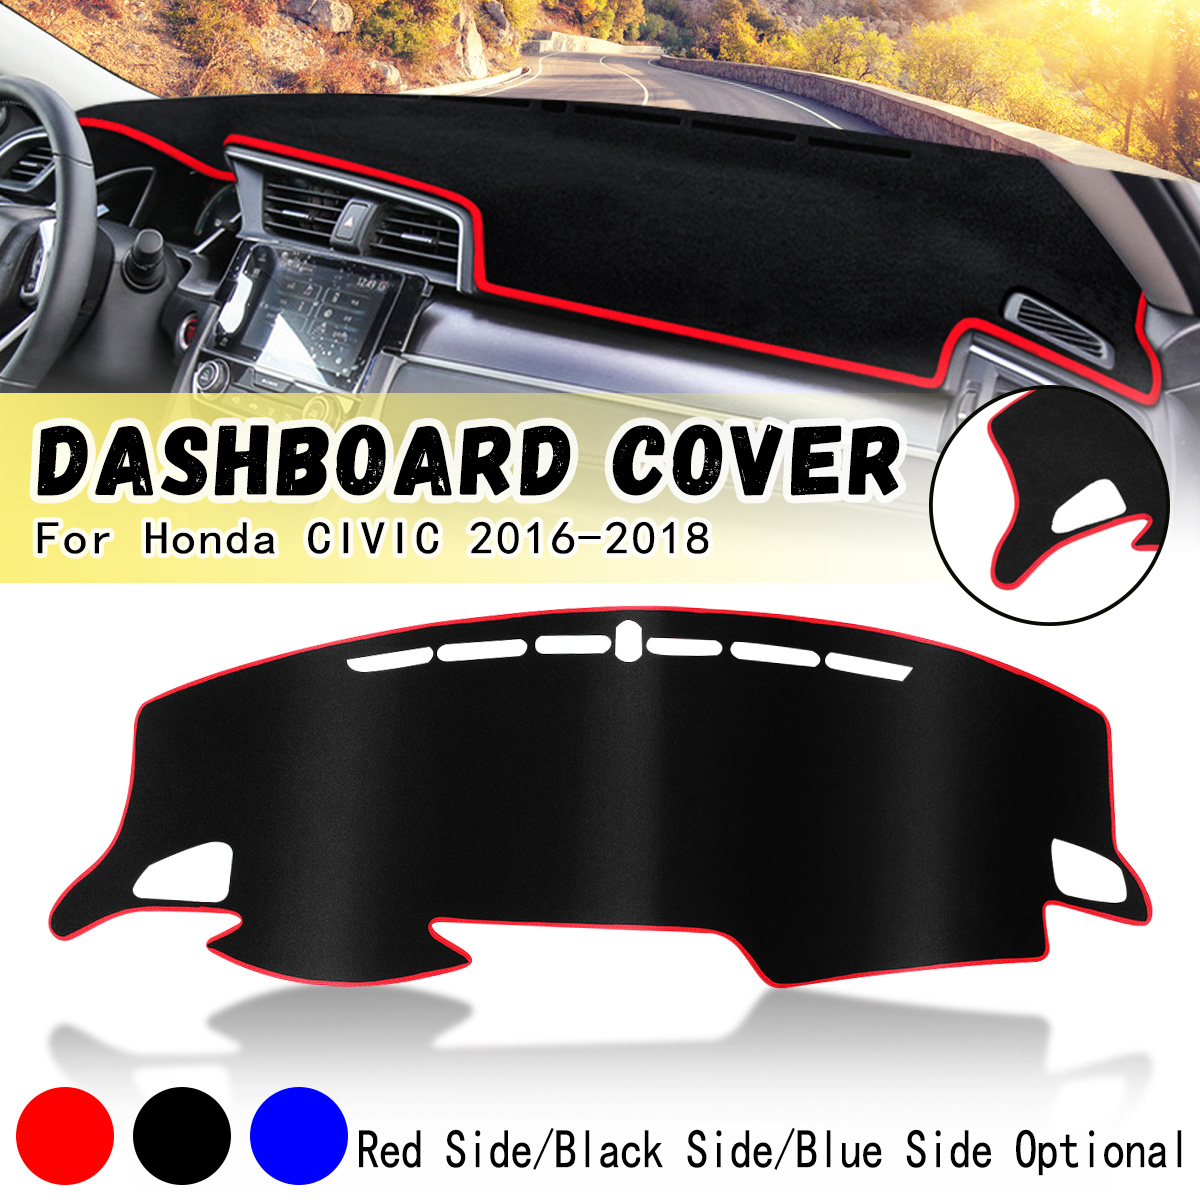 Left Hand Drive Car Dashboard Cover Dash Mat Pad Sun Shade Carpet Cover For Honda/CIVIC 2016 2017 2018 for peugeot 3008 5008 2016 2017 2018 2019 leather dashmat dashboard cover car pad dash mat sunshade carpet cover car